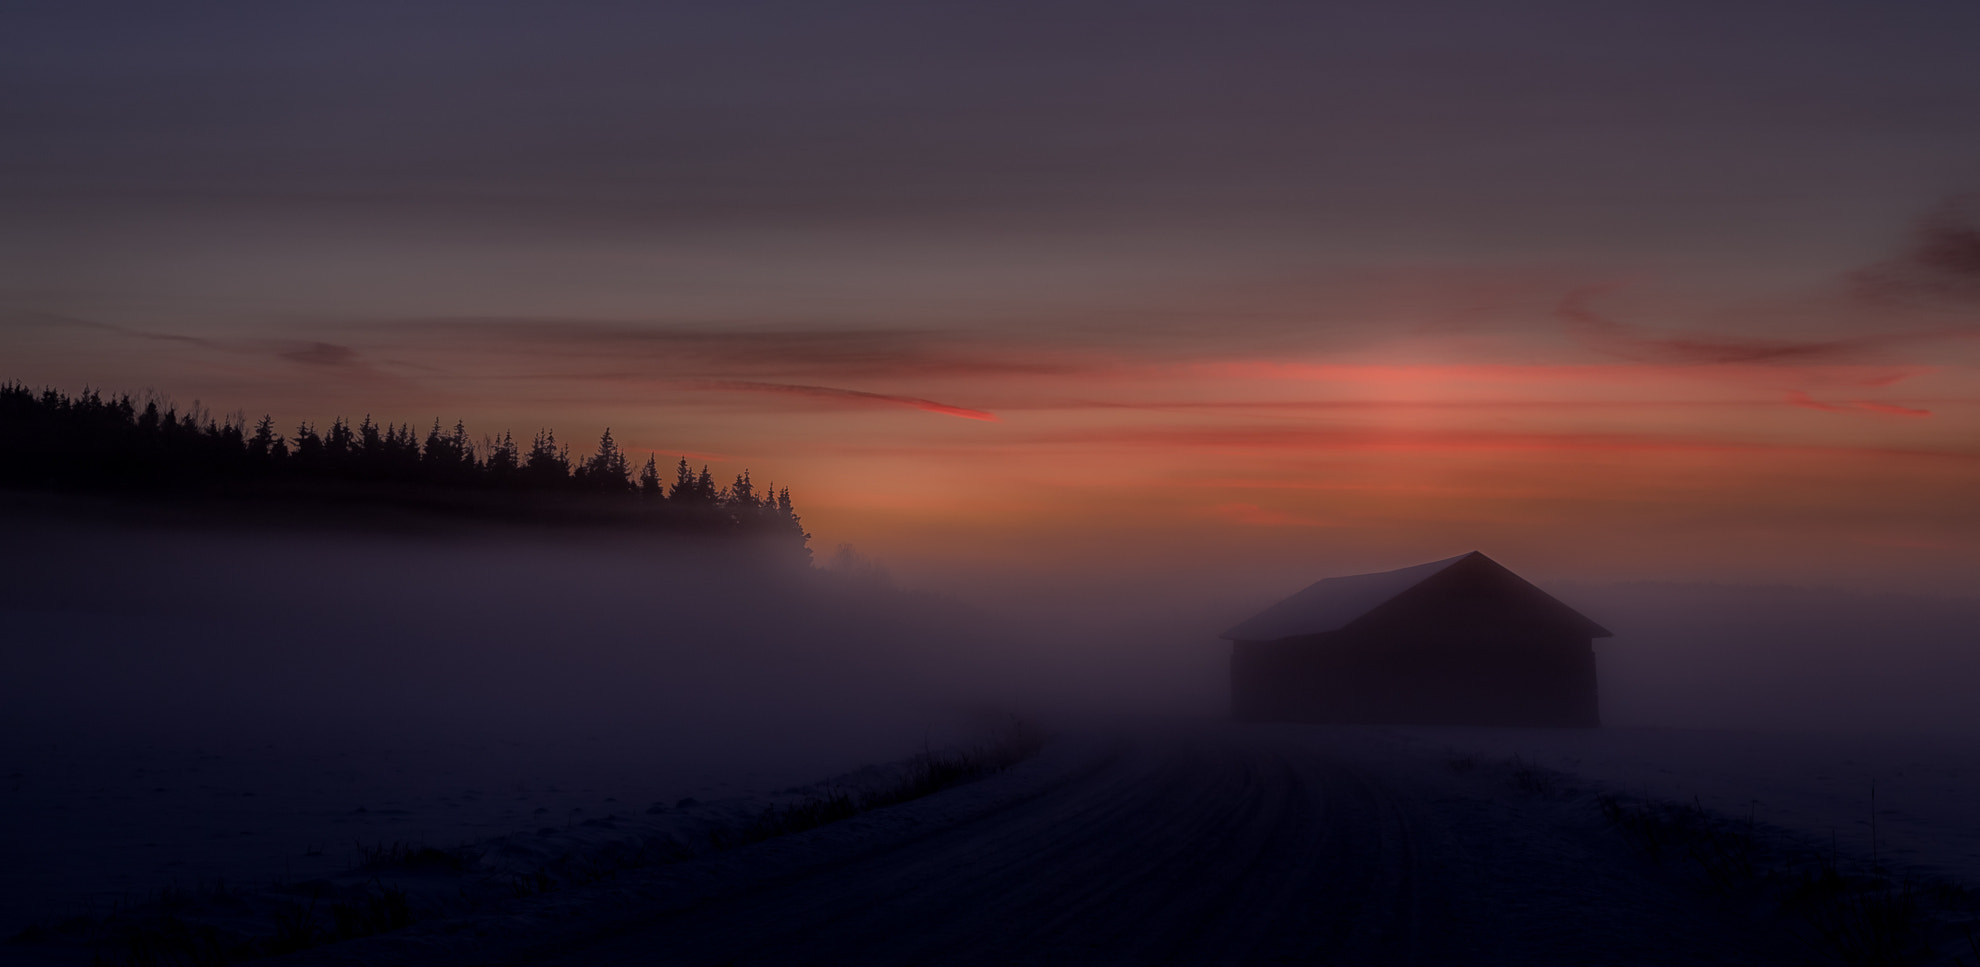 Photograph Barn in the mist, after sunset by Tapio Kaisla on 500px